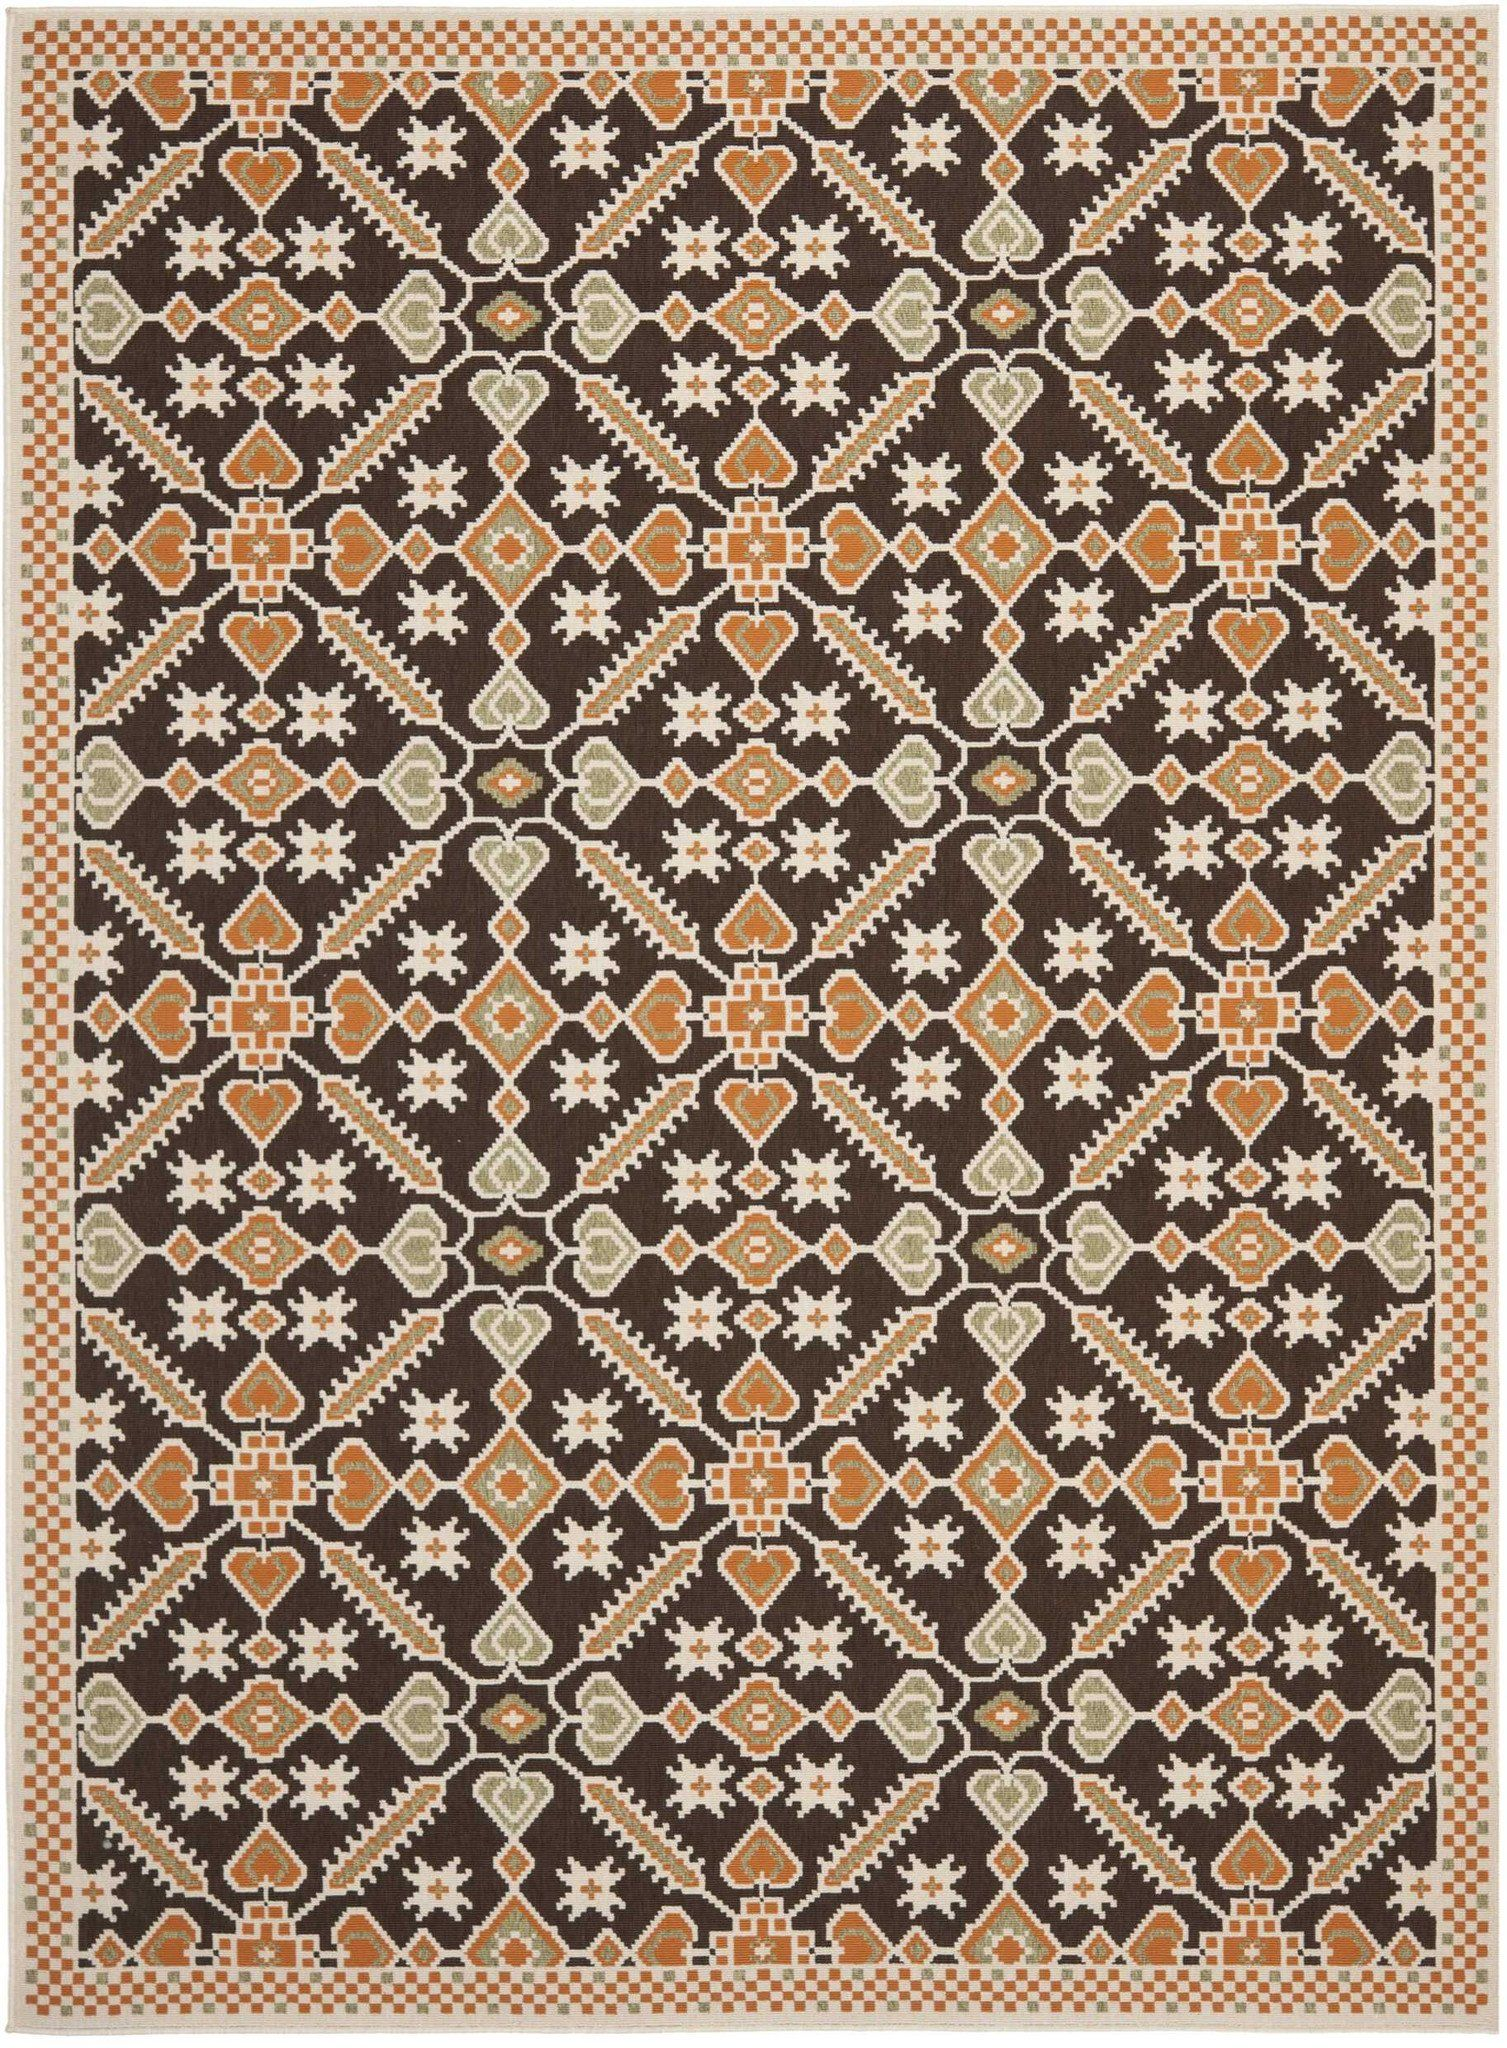 Safavieh Veranda Ver098 Area Rug Colorful Rugs Area Rugs Graphic Patterns